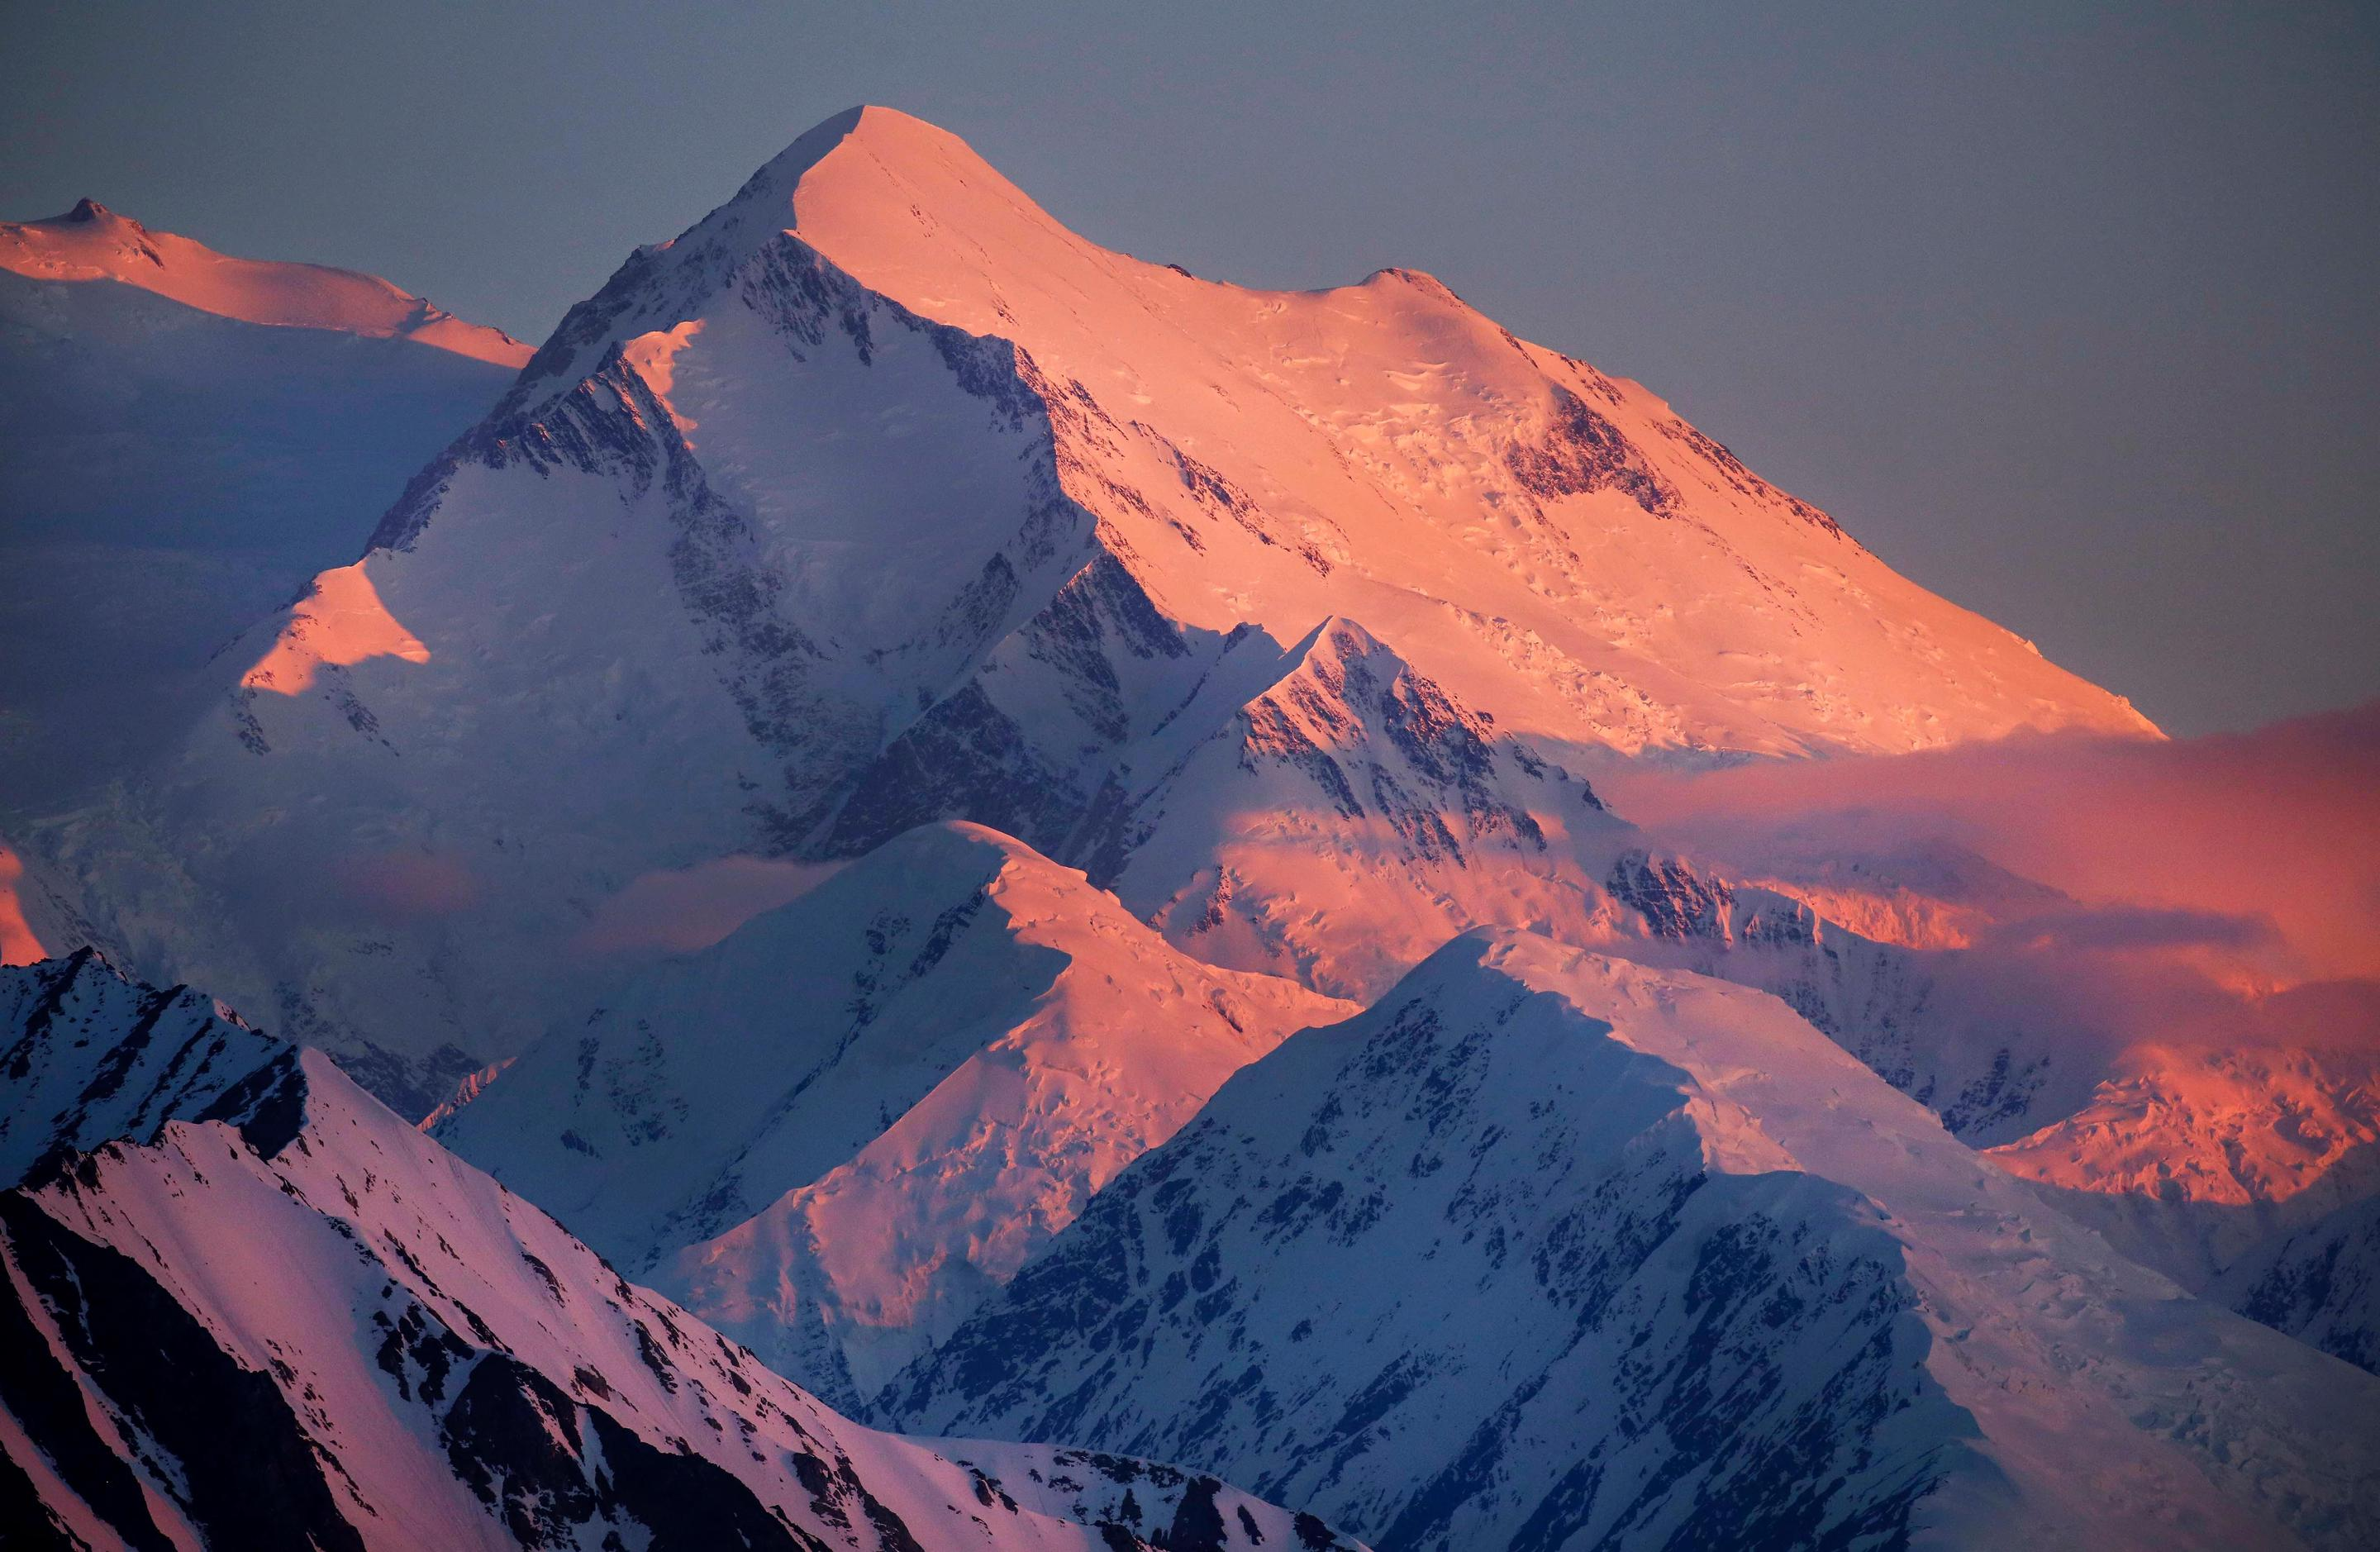 AlpenglowAlpenglow on North America's tallest peak, Denali